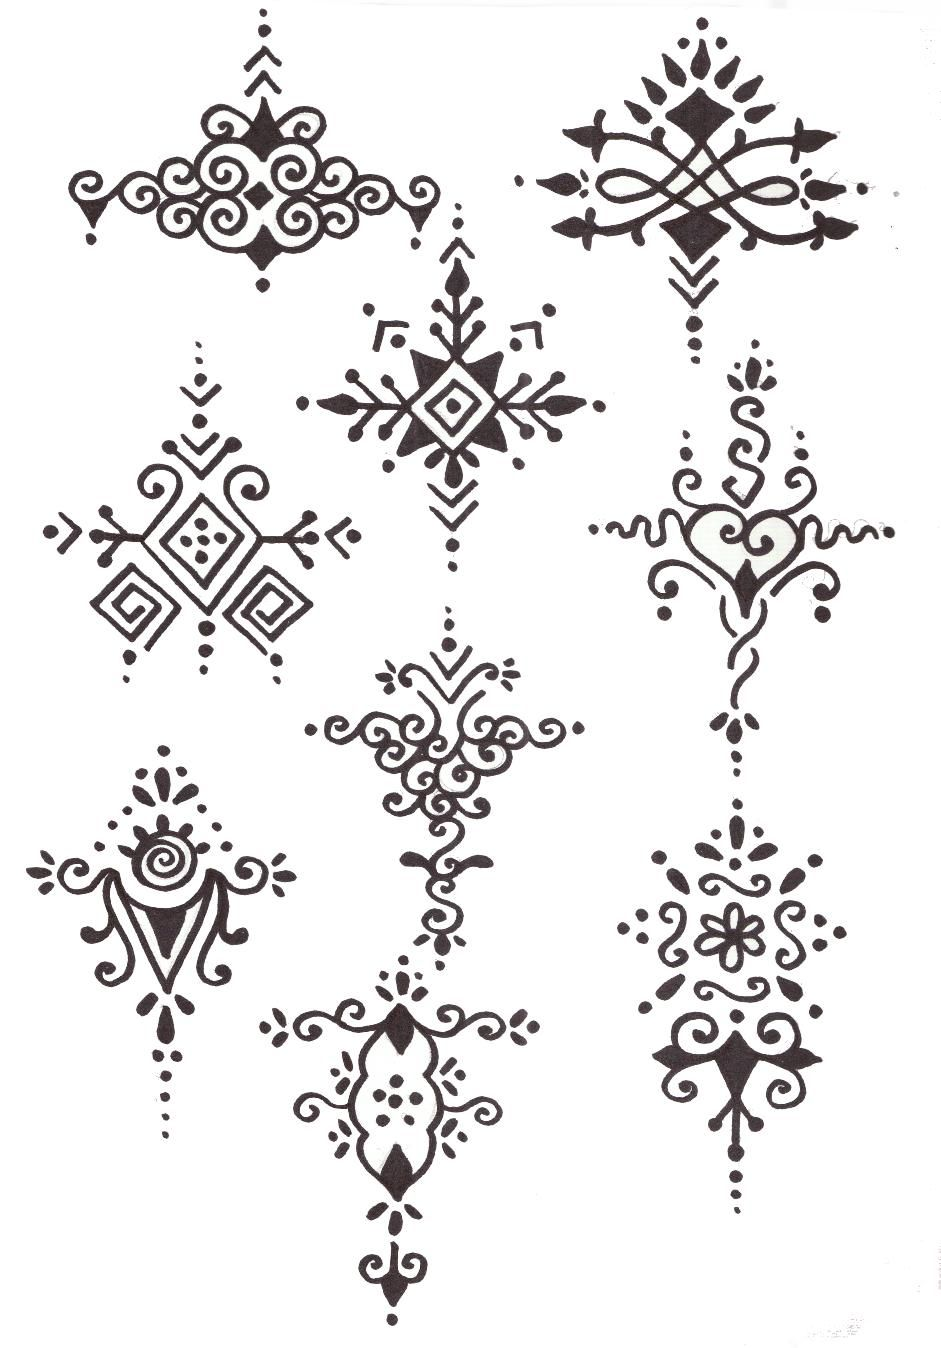 3abacf8aa Geography for Kids: India henna designs to go with my henna arm ...